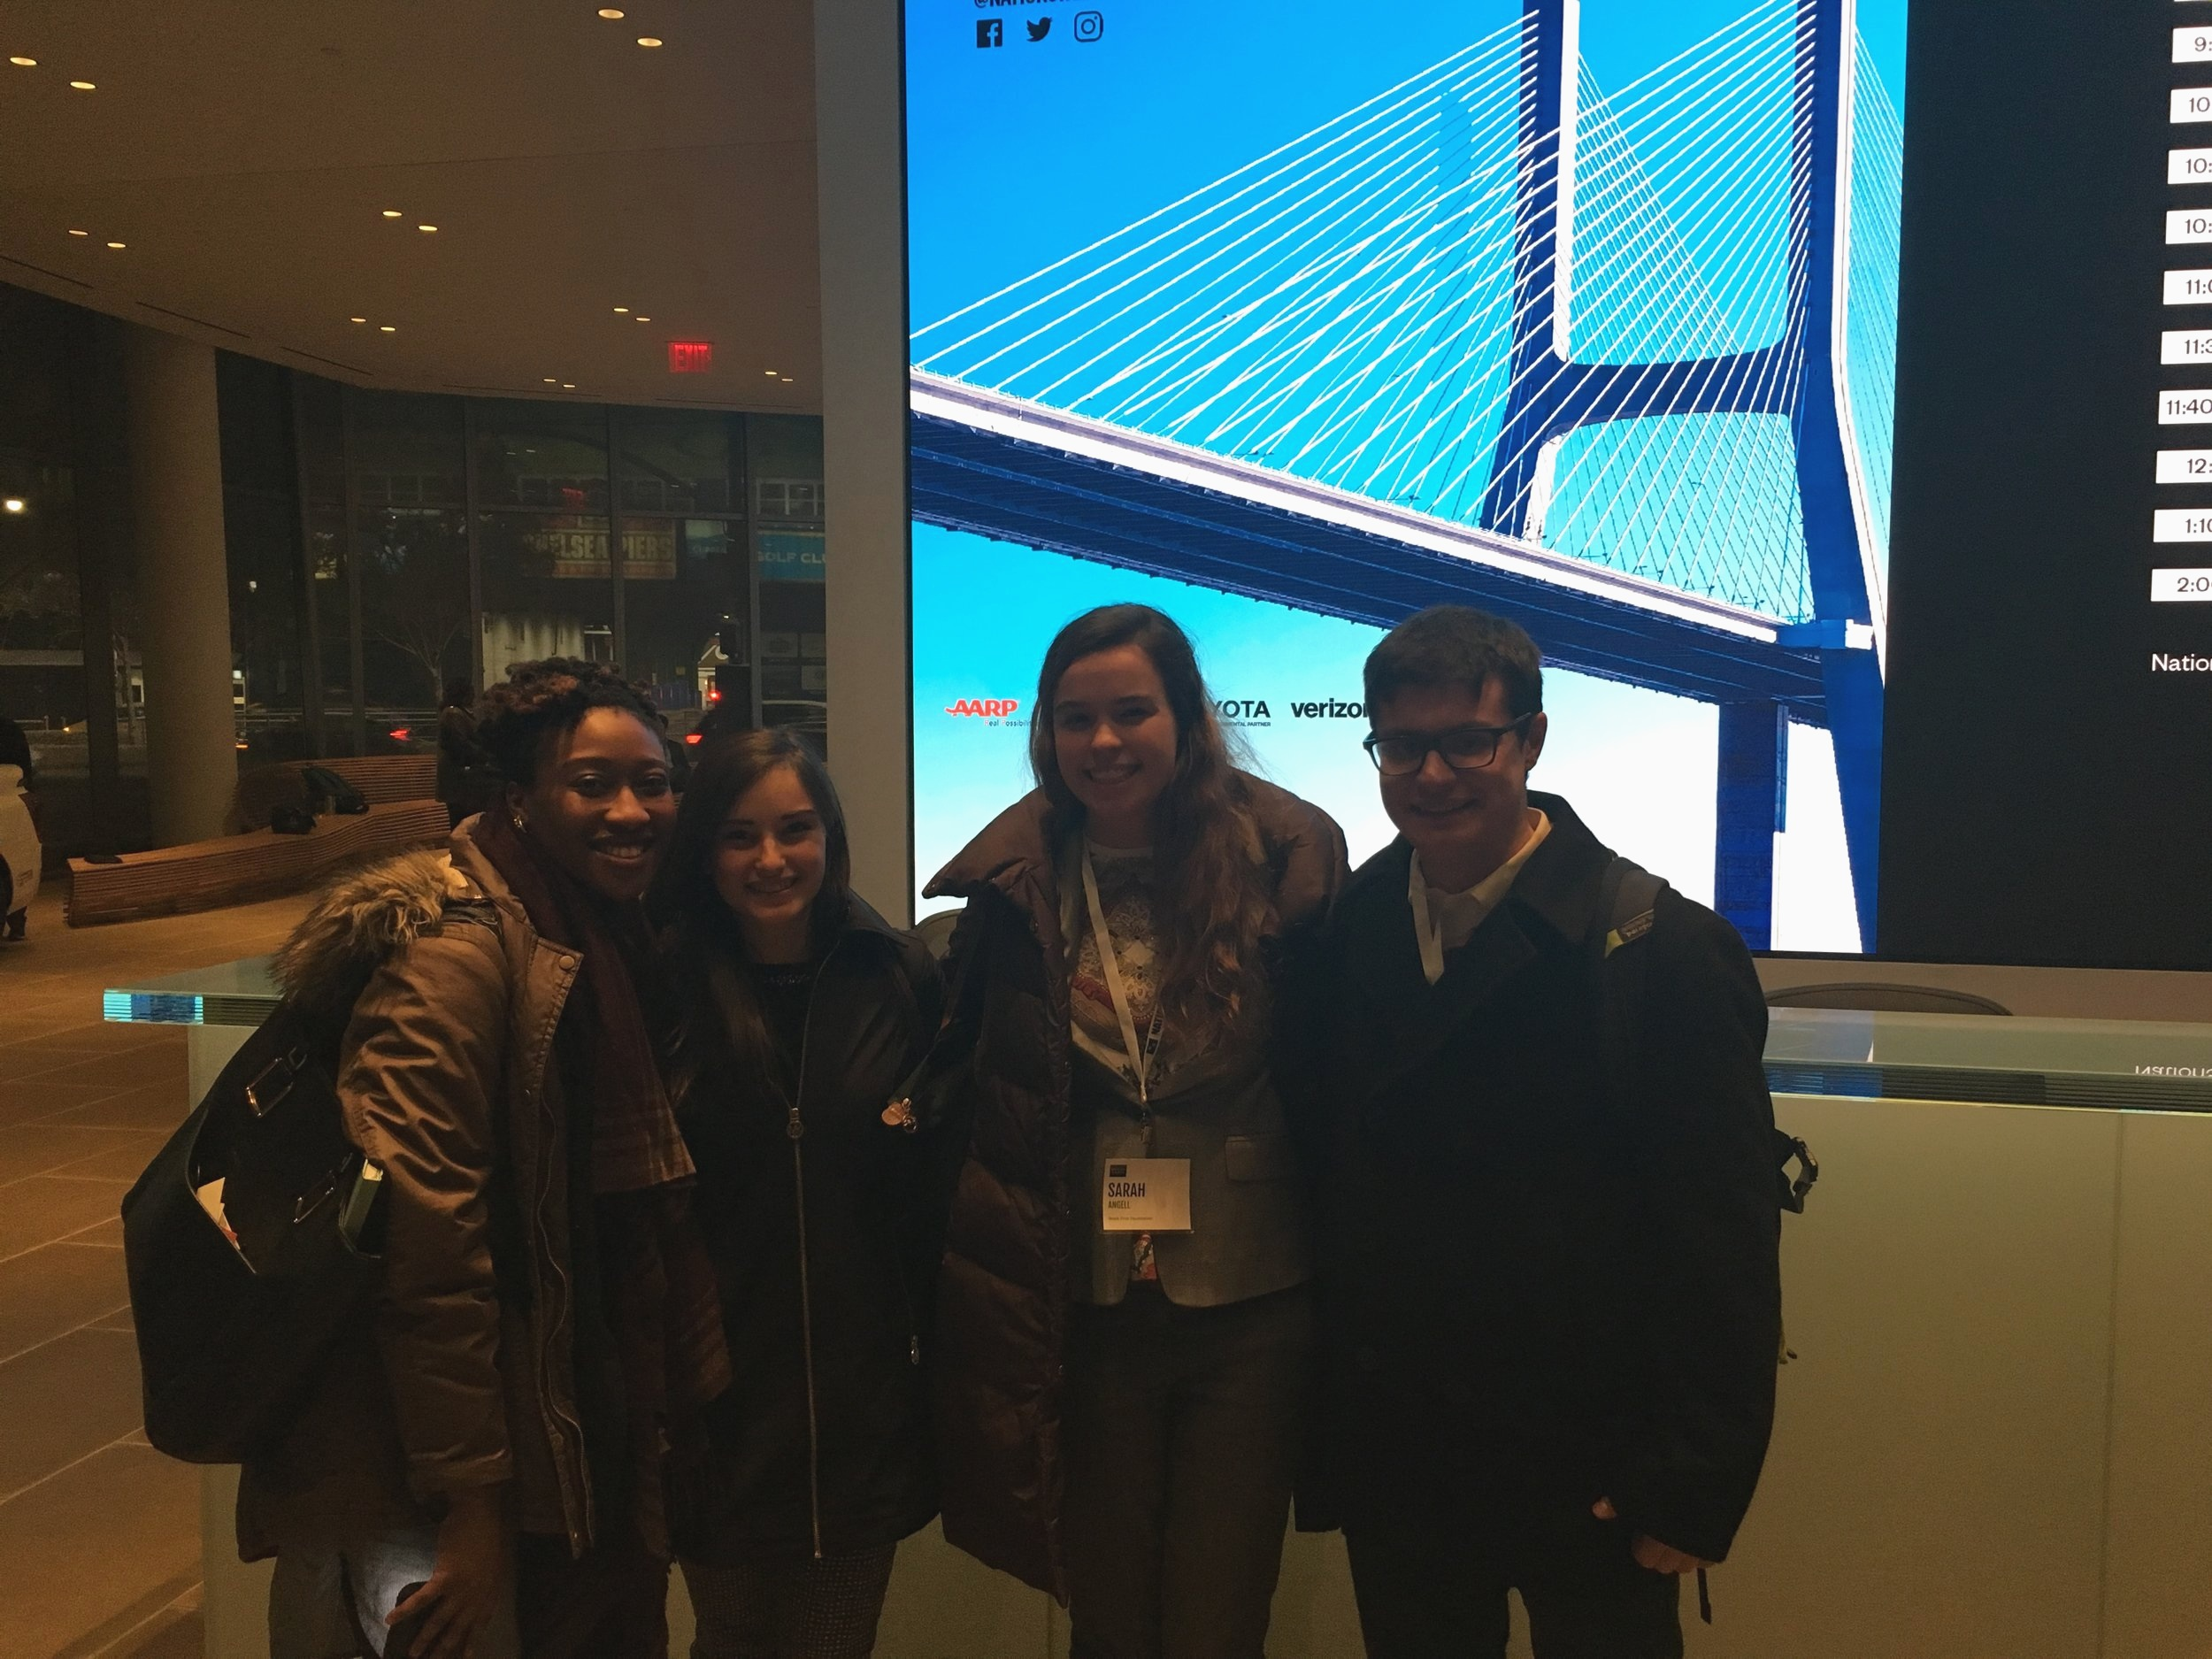 Fellows at Nationswell. From left: Courtney Smith, Ilana Fitzpatrick, Sarah Angell, and Patrick Smith.